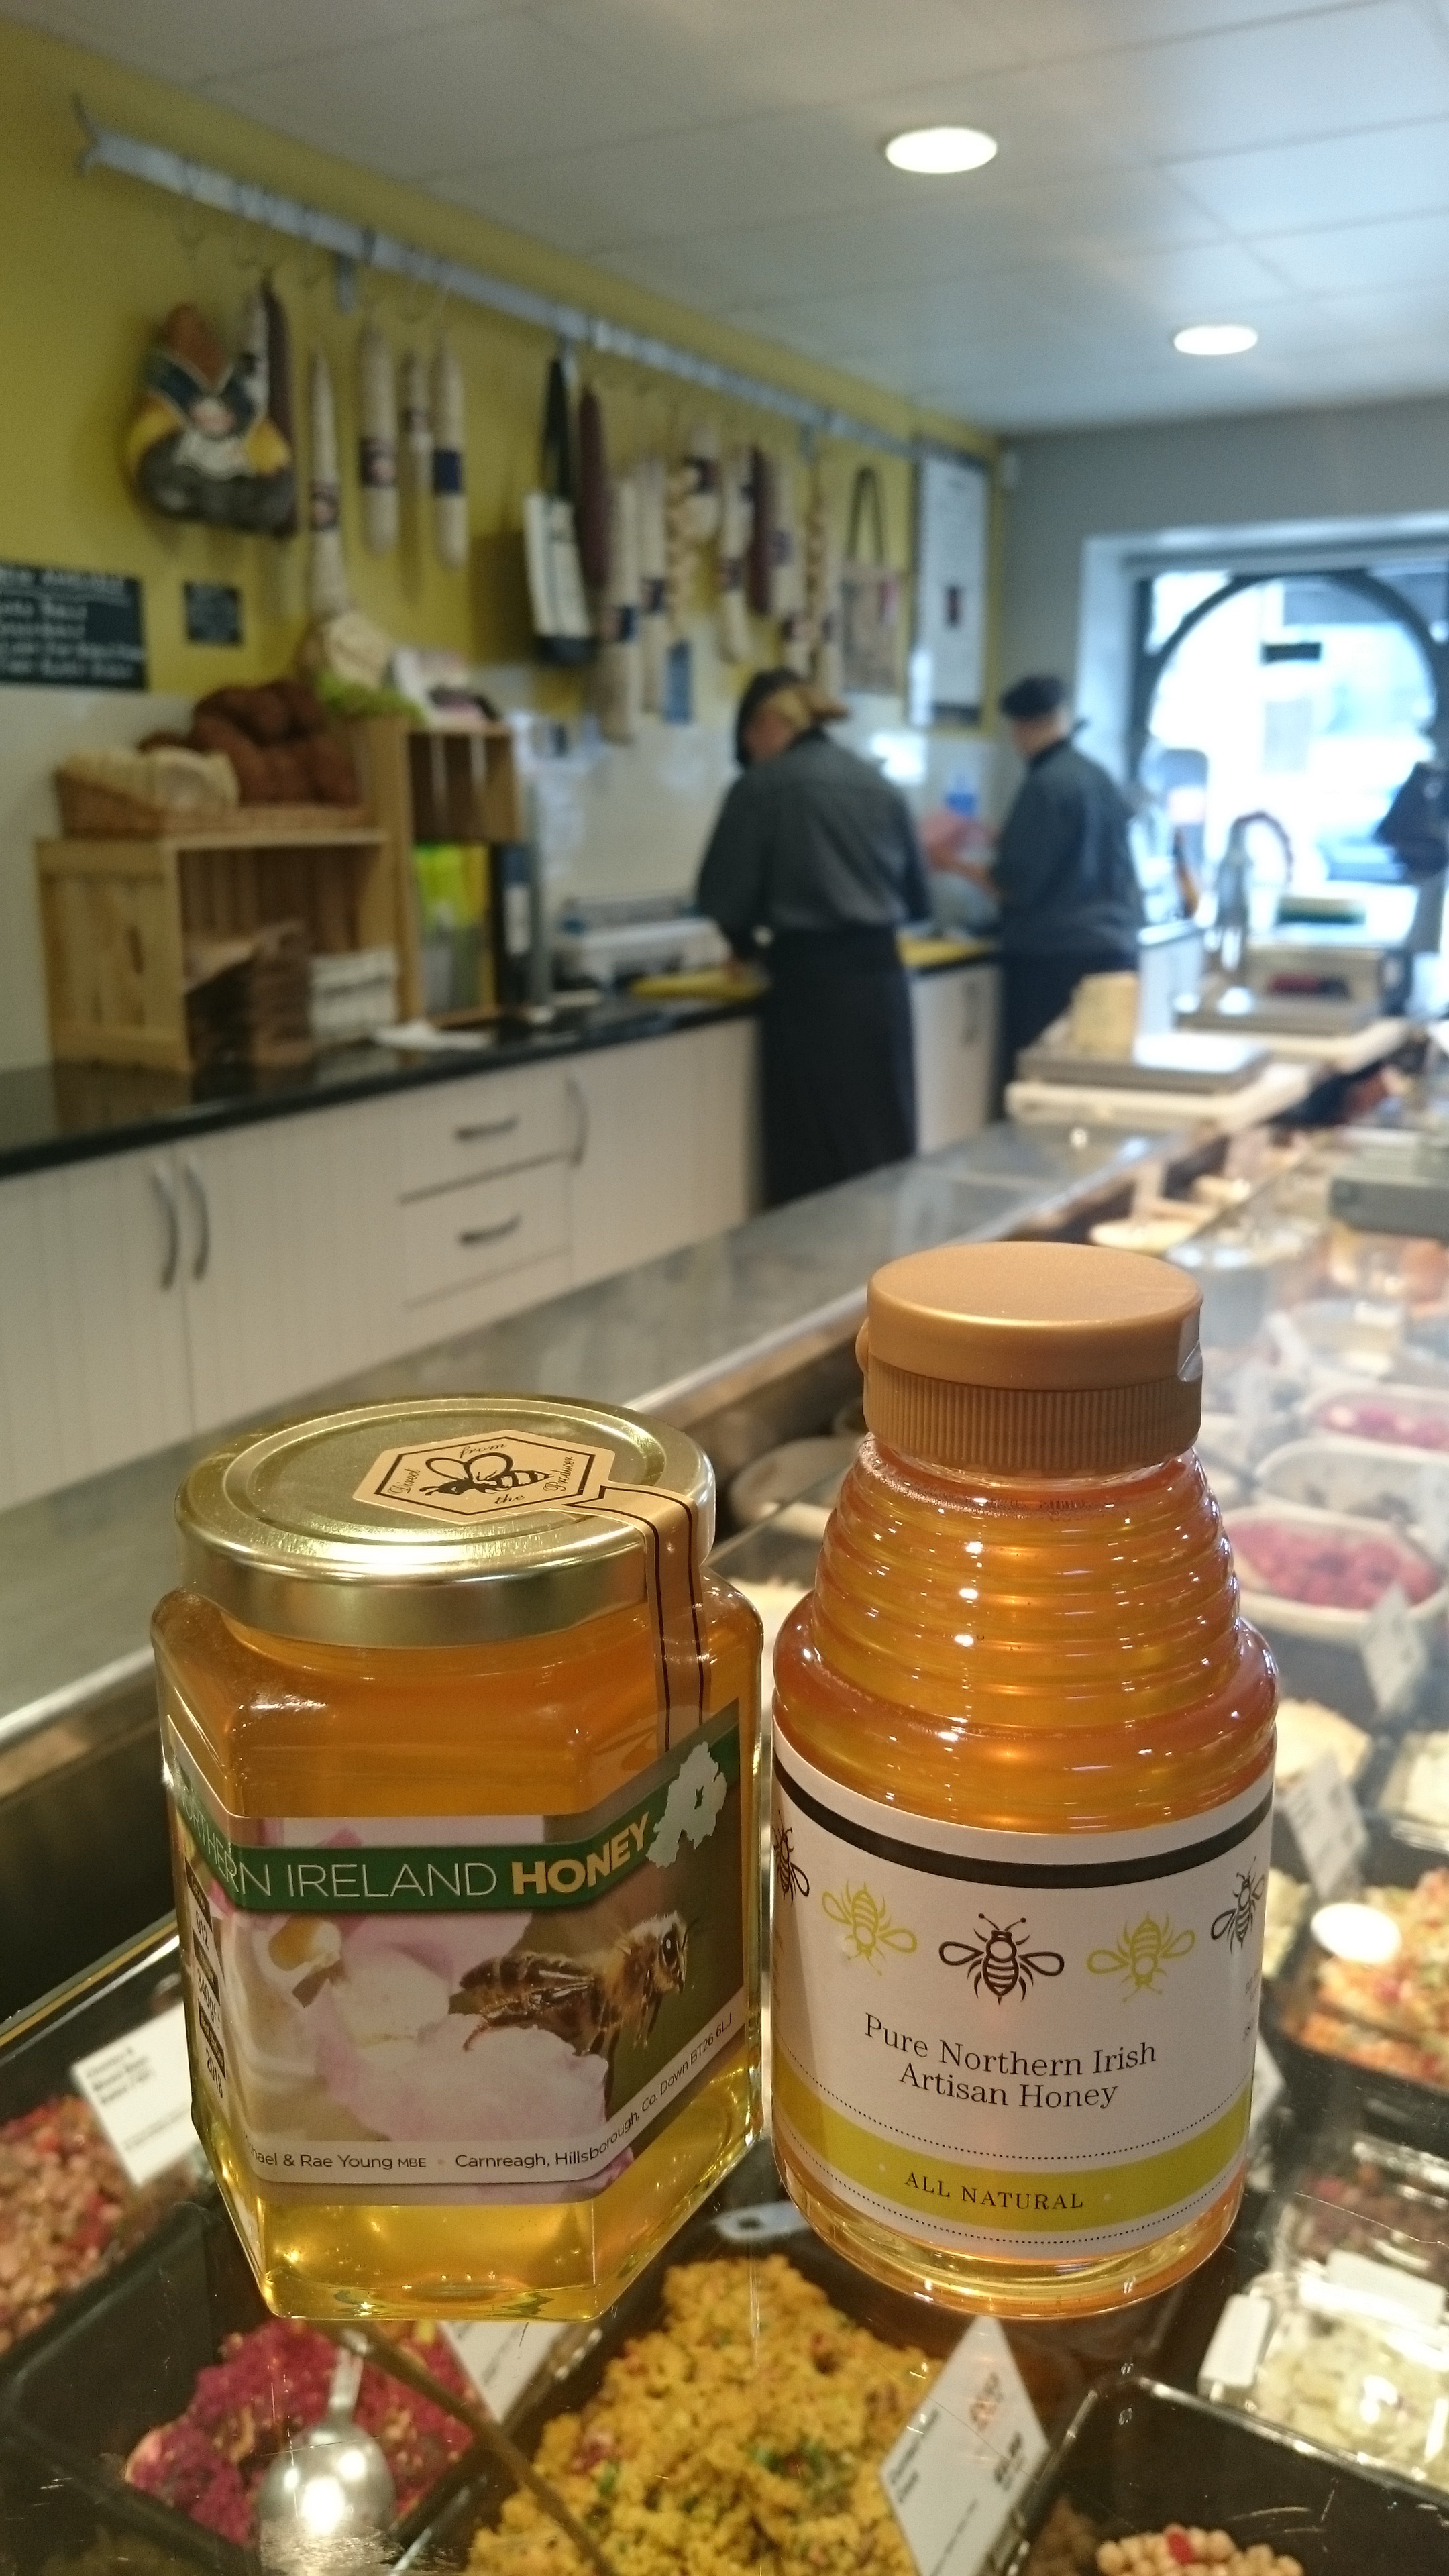 Local Honey available at McCartney's of Moira